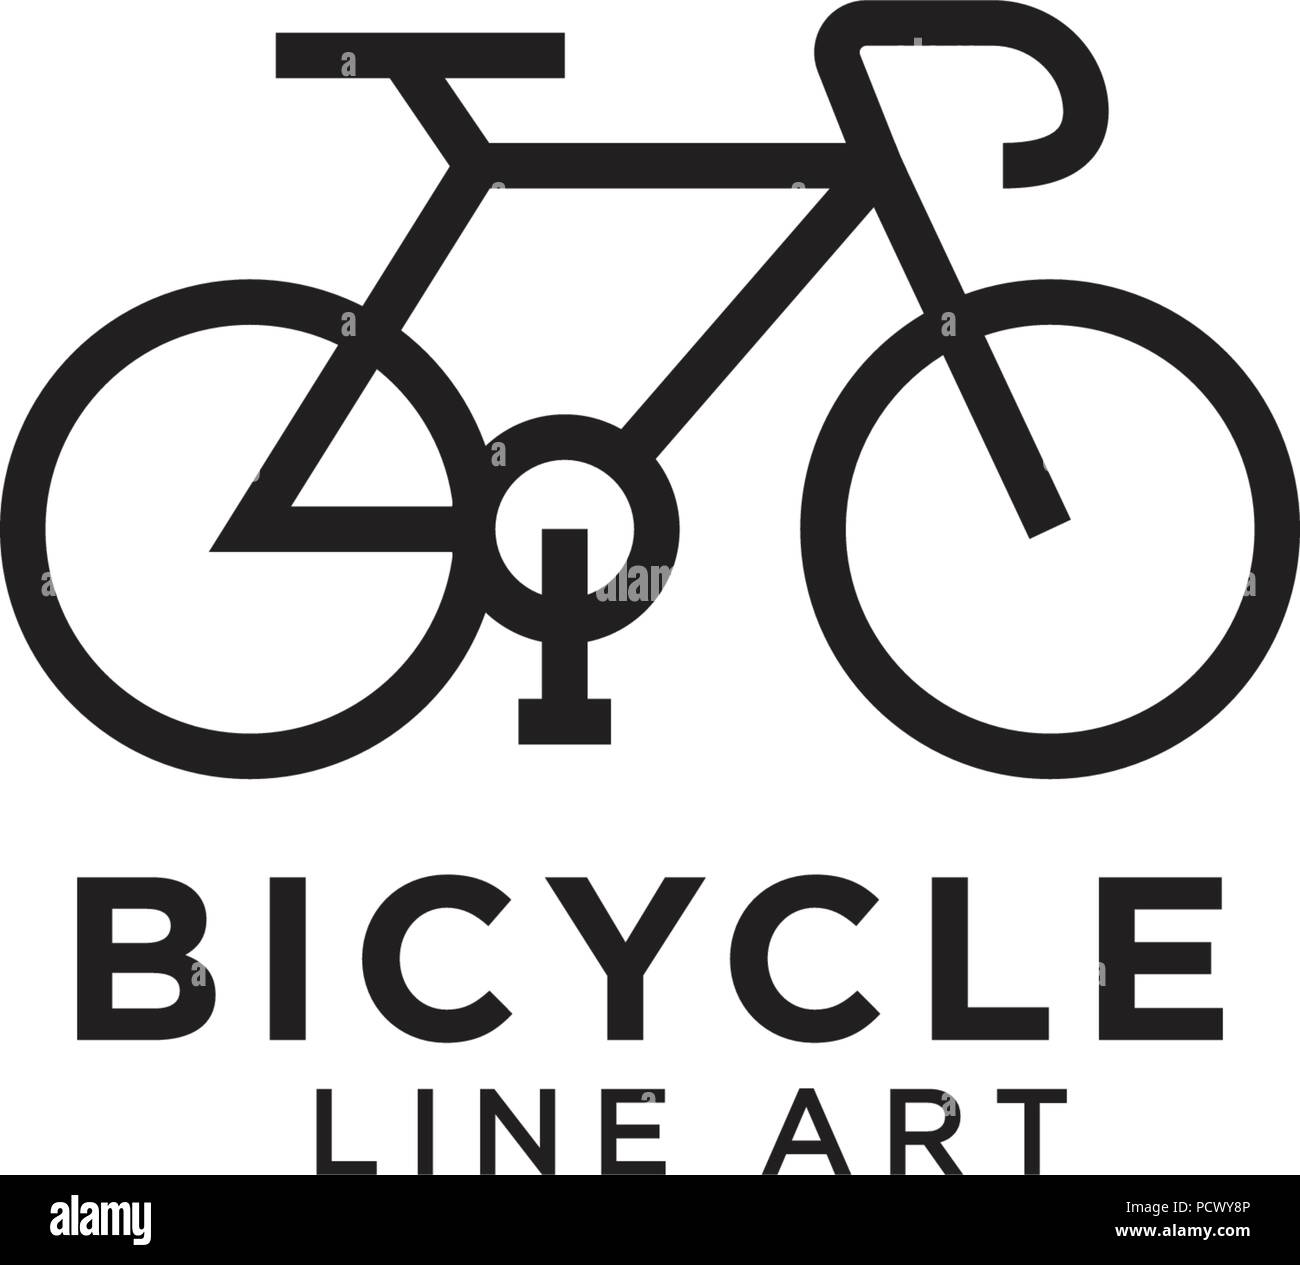 Bike logo design template royalty free vector image.